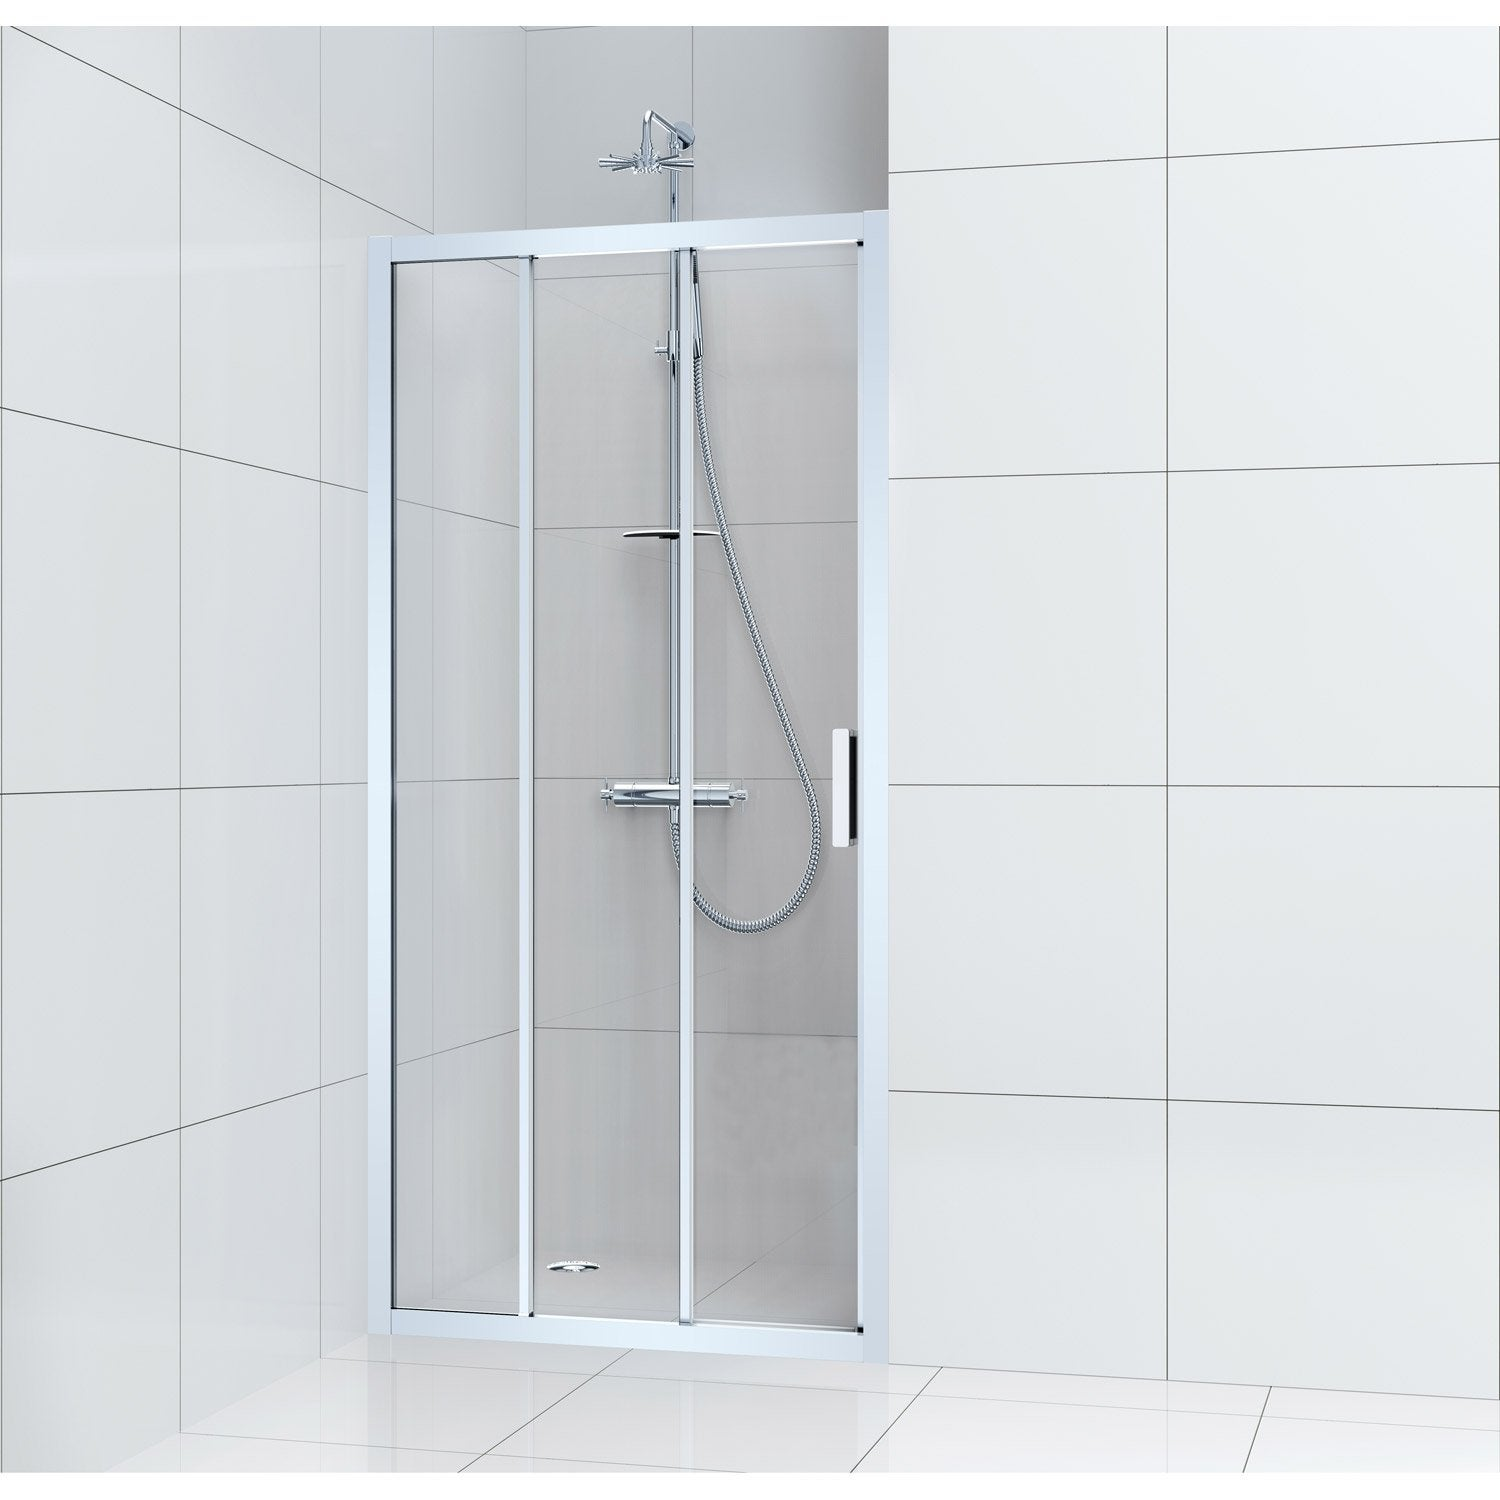 Porte de douche coulissante 100 cm transparent charm for Porte extensible leroy merlin